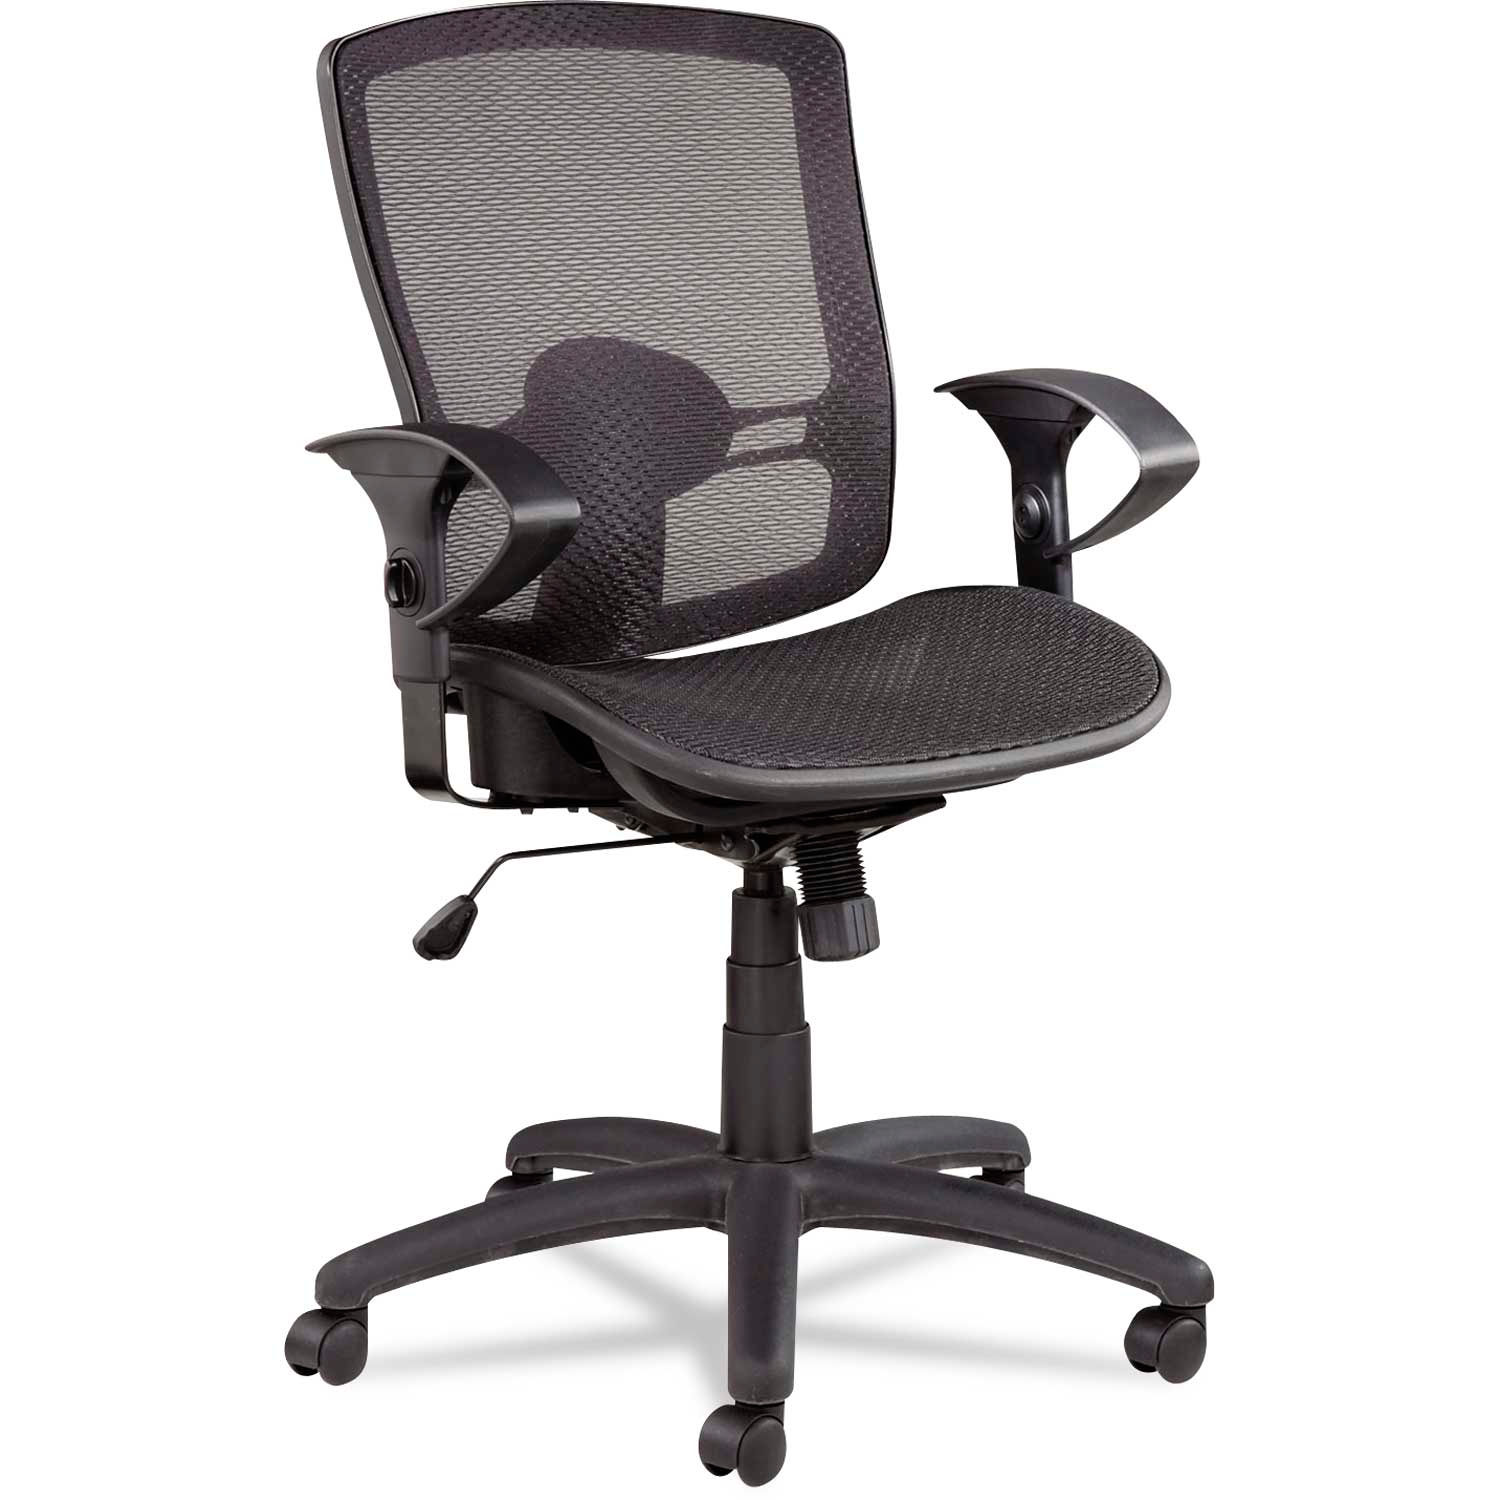 Alera Office Chairs Chairs Mesh Alera 174 Synchro Mesh Office Chair Mesh Seat